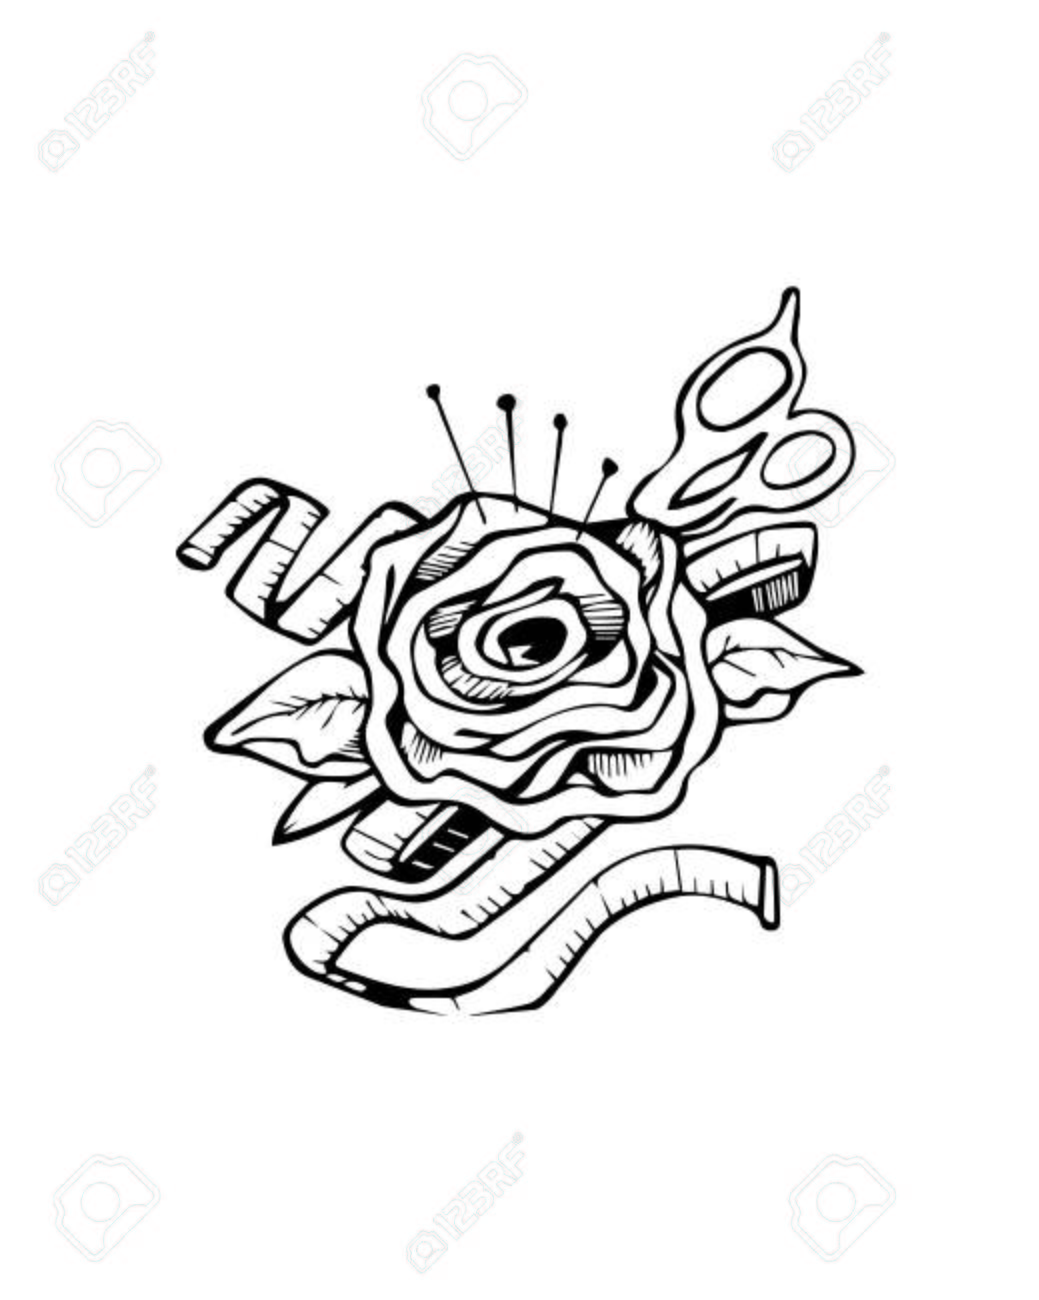 hand drawn vector illustration or drawing of a rose with a pair